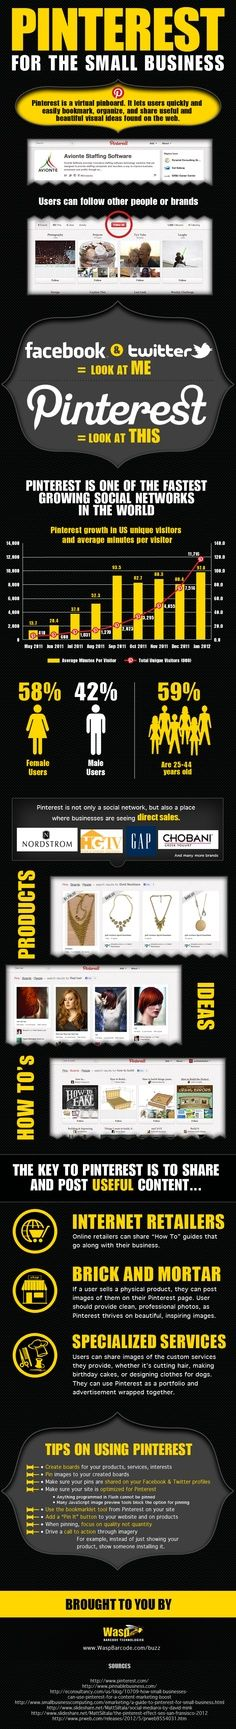 #Pinterest para #PYMES - Pinterest for small business